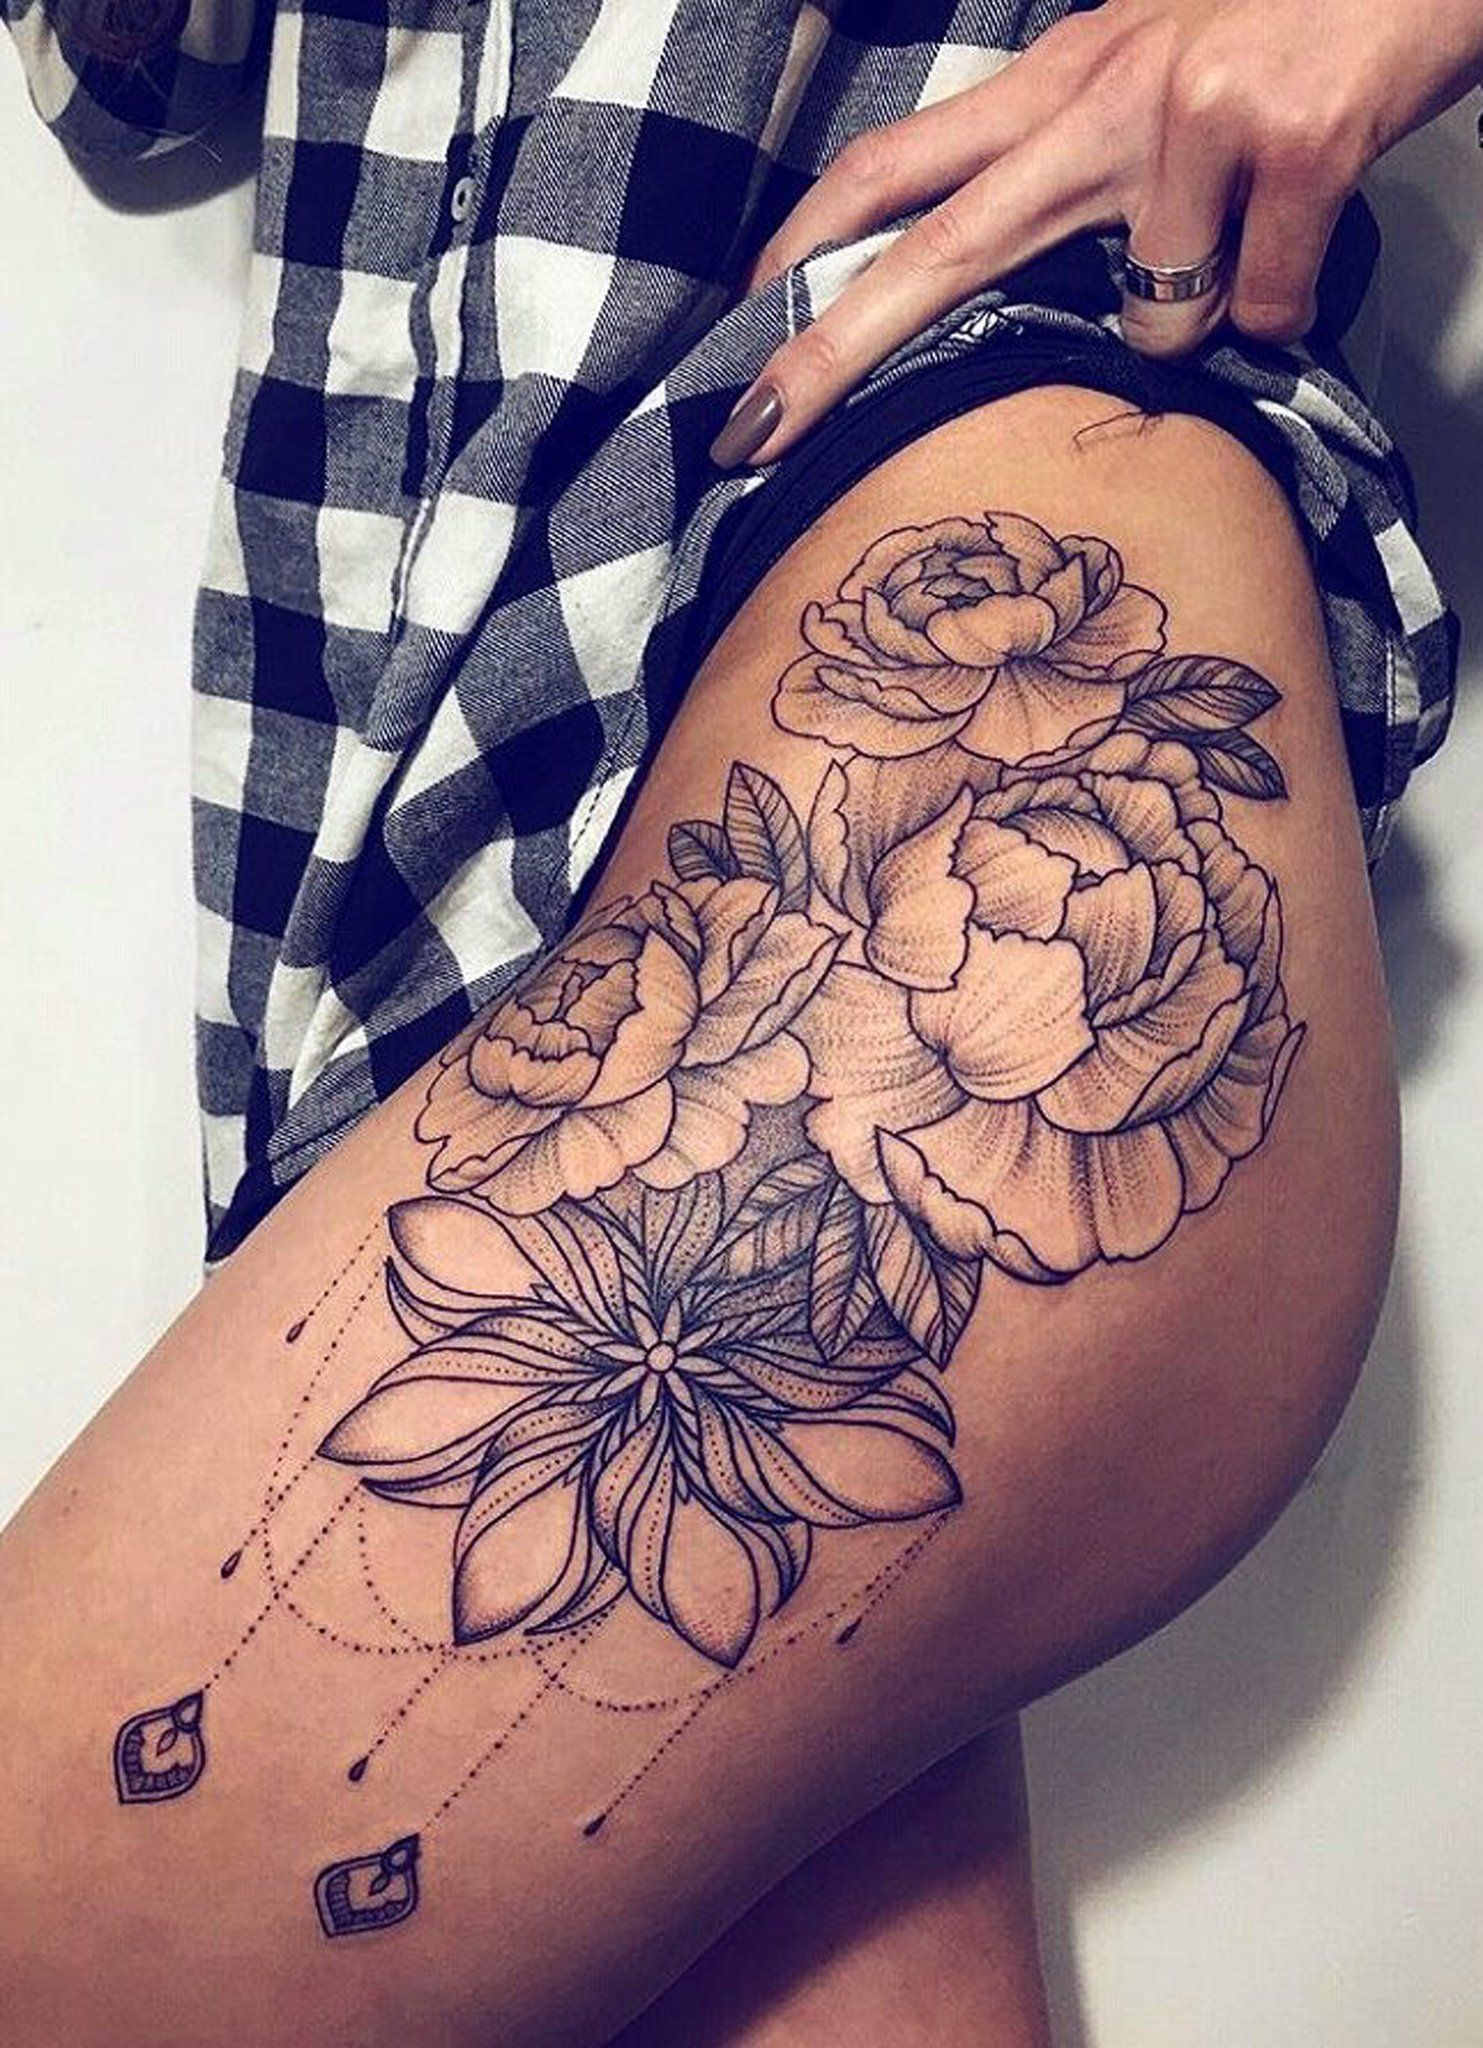 90 Realistic Rose Tattoo Designs For Men - Floral Ink Ideas |Realistic Rose Tattoos Henna Designs